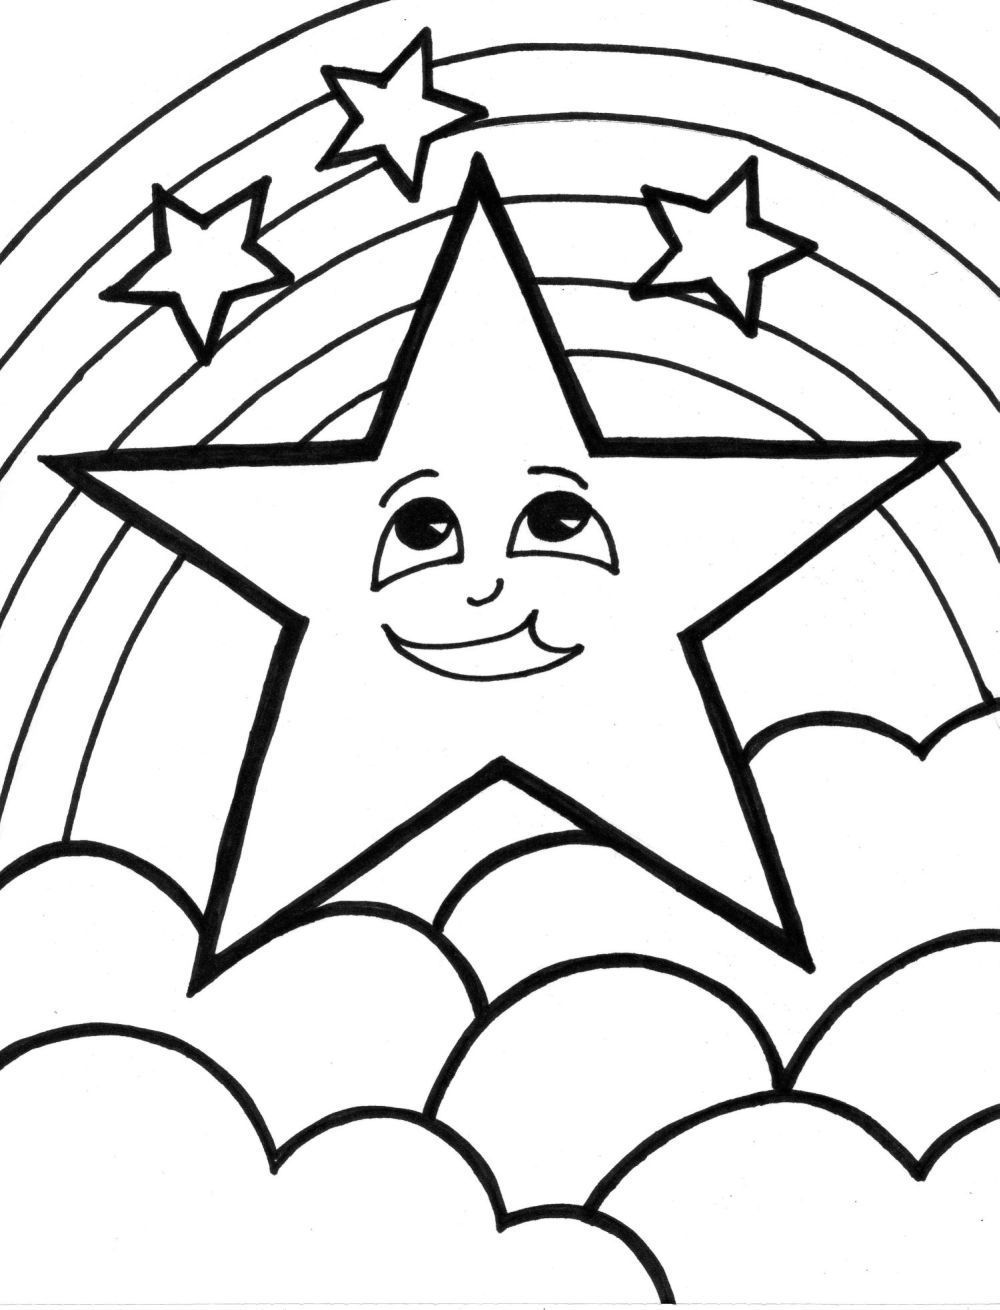 Christmas Coloring Pages For 8 Year Olds Http Www Ausmalbilder Co Christmas Coloring Pages For Shape Coloring Pages Star Coloring Pages Easy Coloring Pages